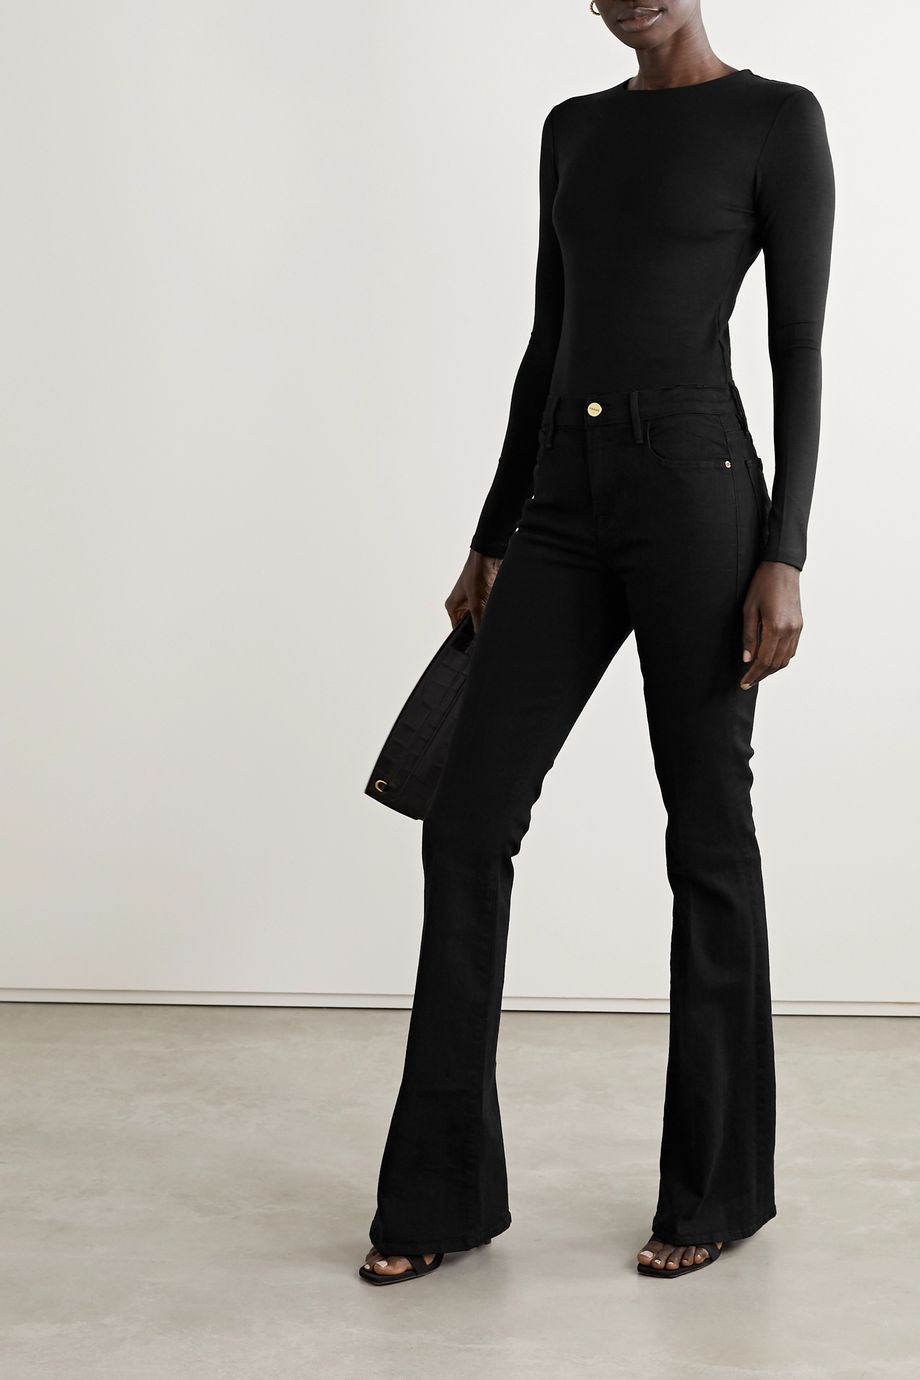 Ninety Percent + NET SUSTAIN Stretch-Tencel bodysuit